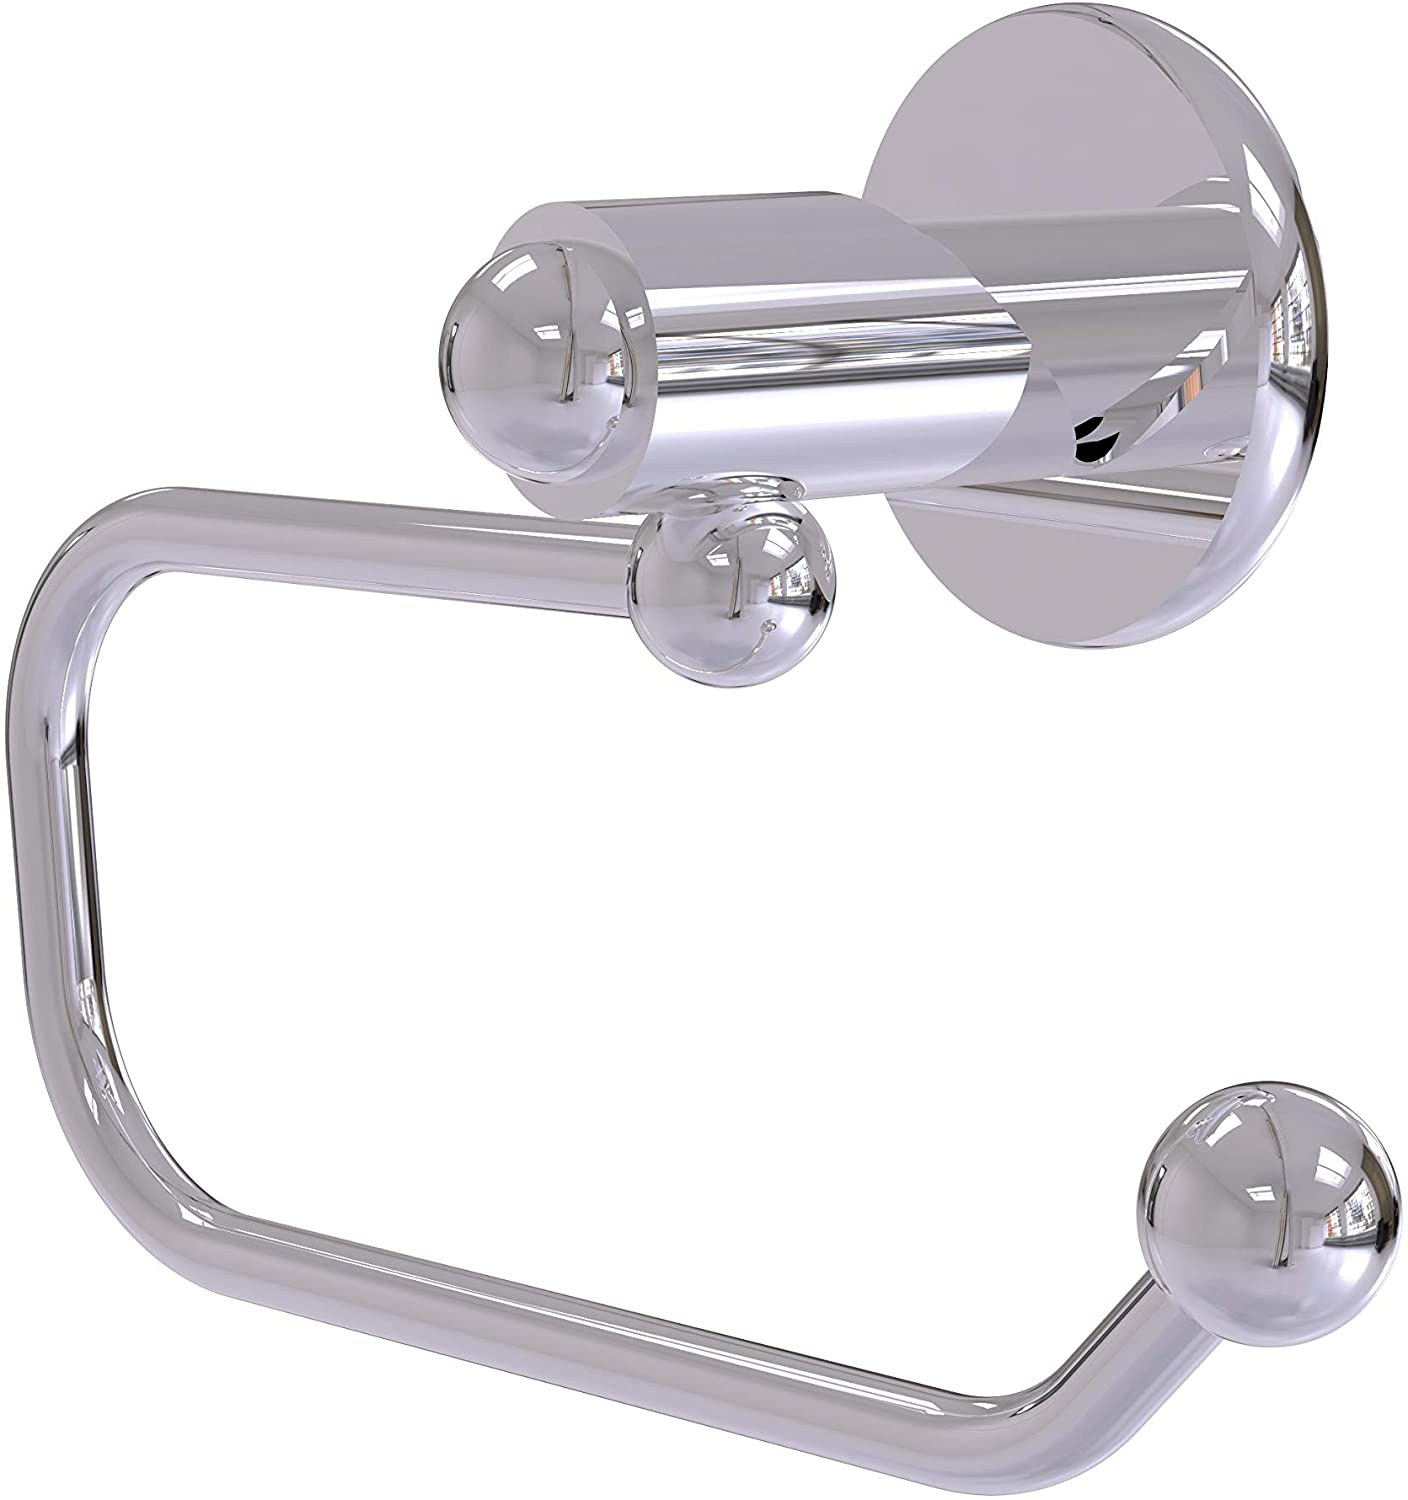 Allied Brass SH-24E-PC Soho Collection European Style Tissue Toilet Paper Holder, Polished Chrome